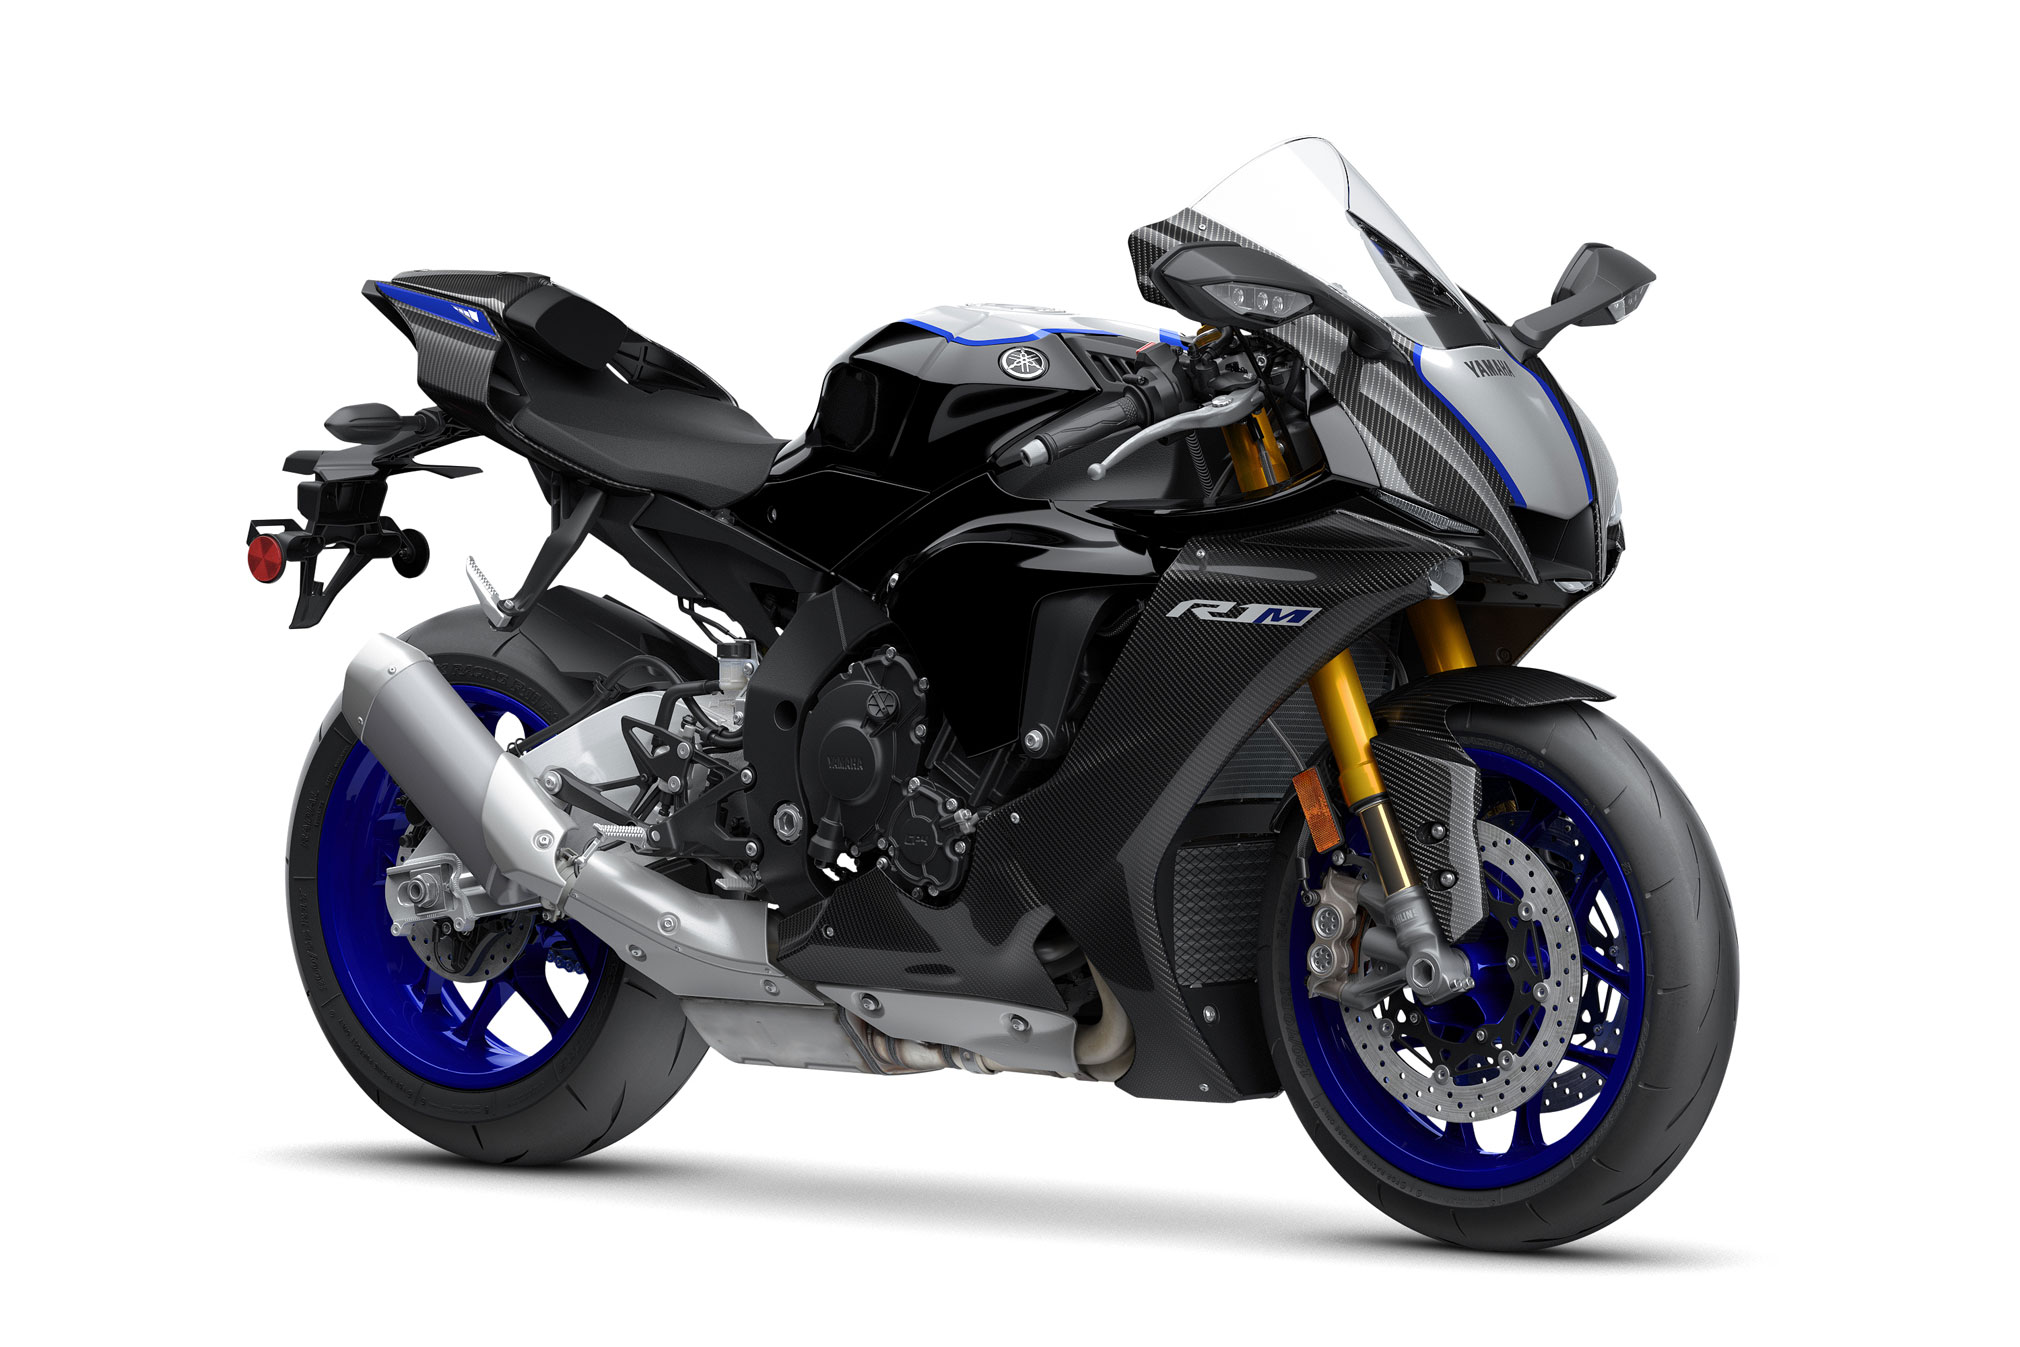 2020 Yamaha YZF-R1M Guide • Total Motorcycle